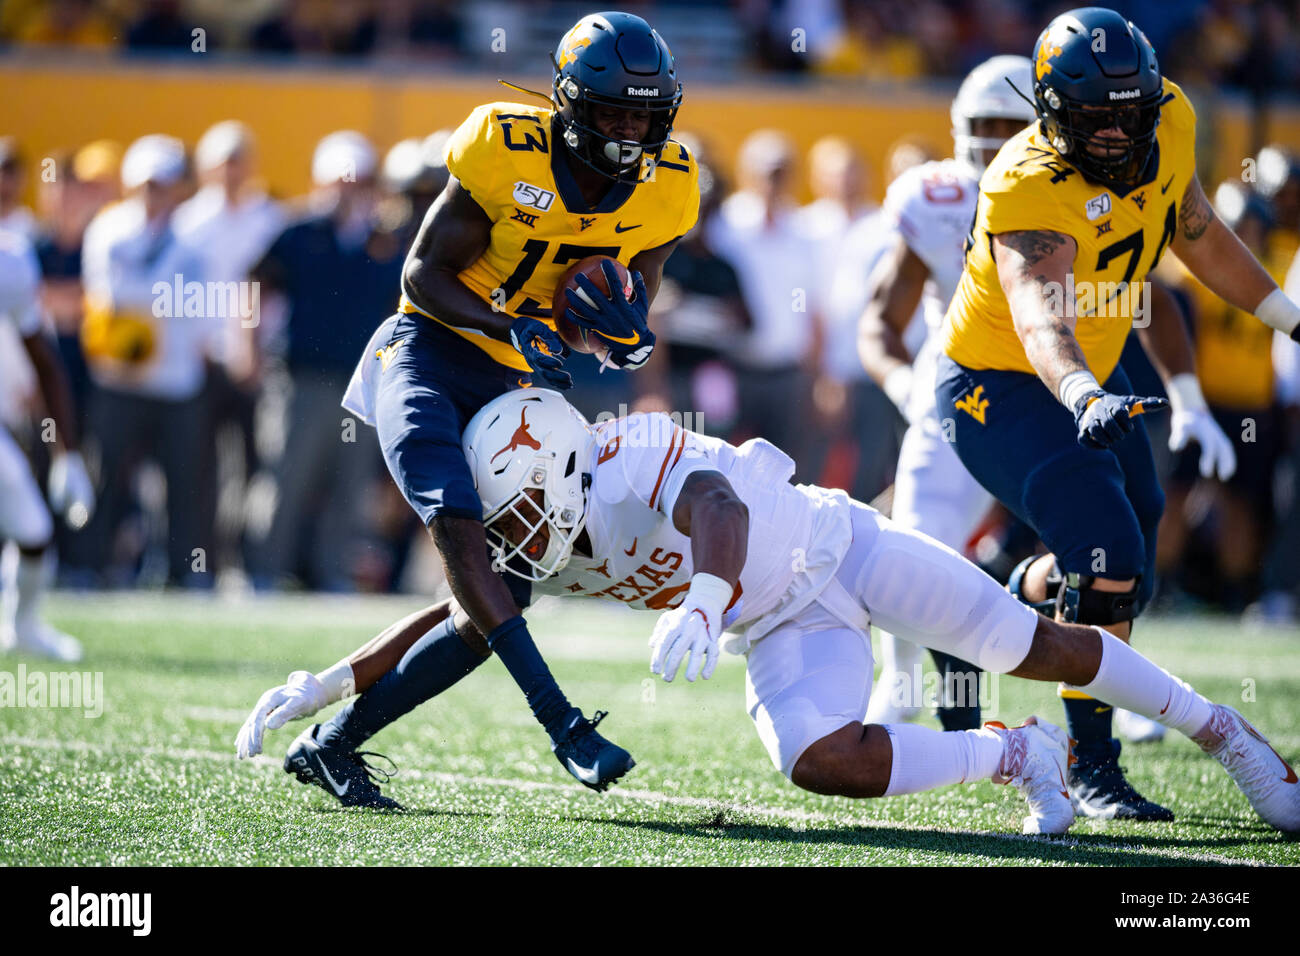 West Virginia Mountaineers wide receiver Sam James (13) is tackled by Texas Longhorns linebacker Juwan Mitchell (6) during the NCAA college football game between the Texas Longhorns and the West Virginia Mountaineers on Saturday October 5, 2019 at Milan Puskar Stadium in Morgantown, West Virginia. Jacob Kupferman/CSM Stock Photo